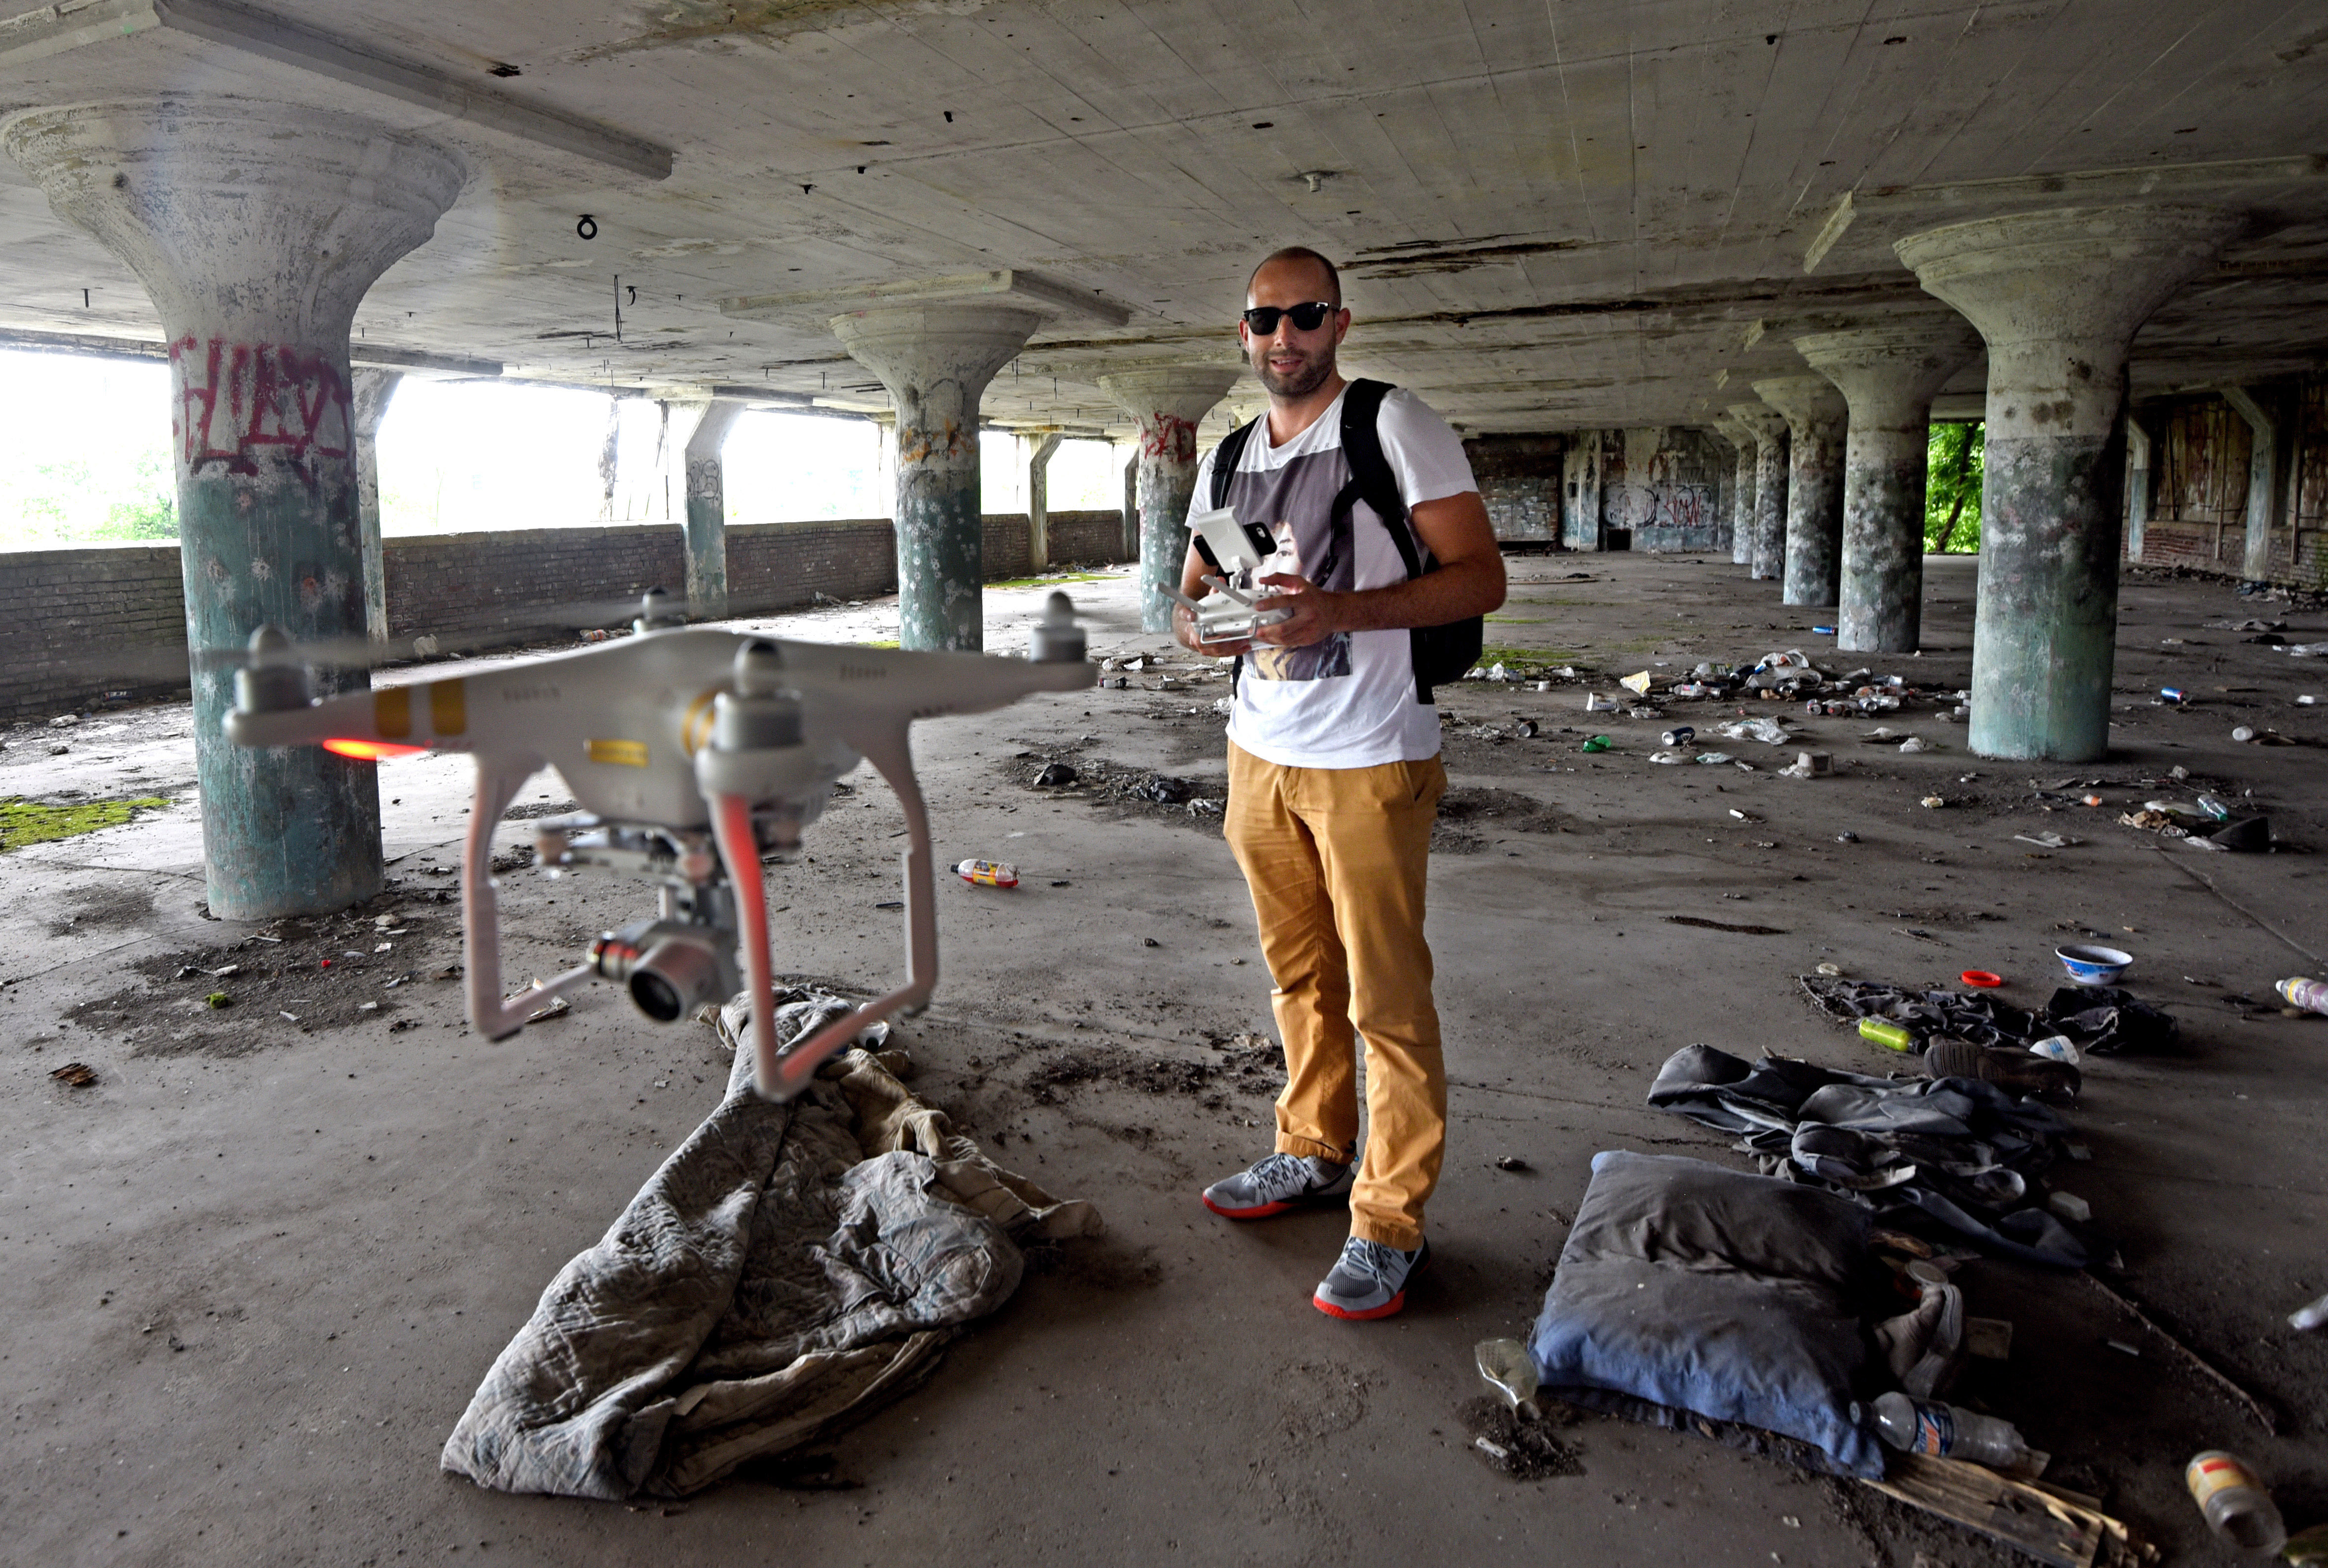 In 2016, Hasan Oswald flies a drone inside an abandoned warehouse in Camden, New Jersey